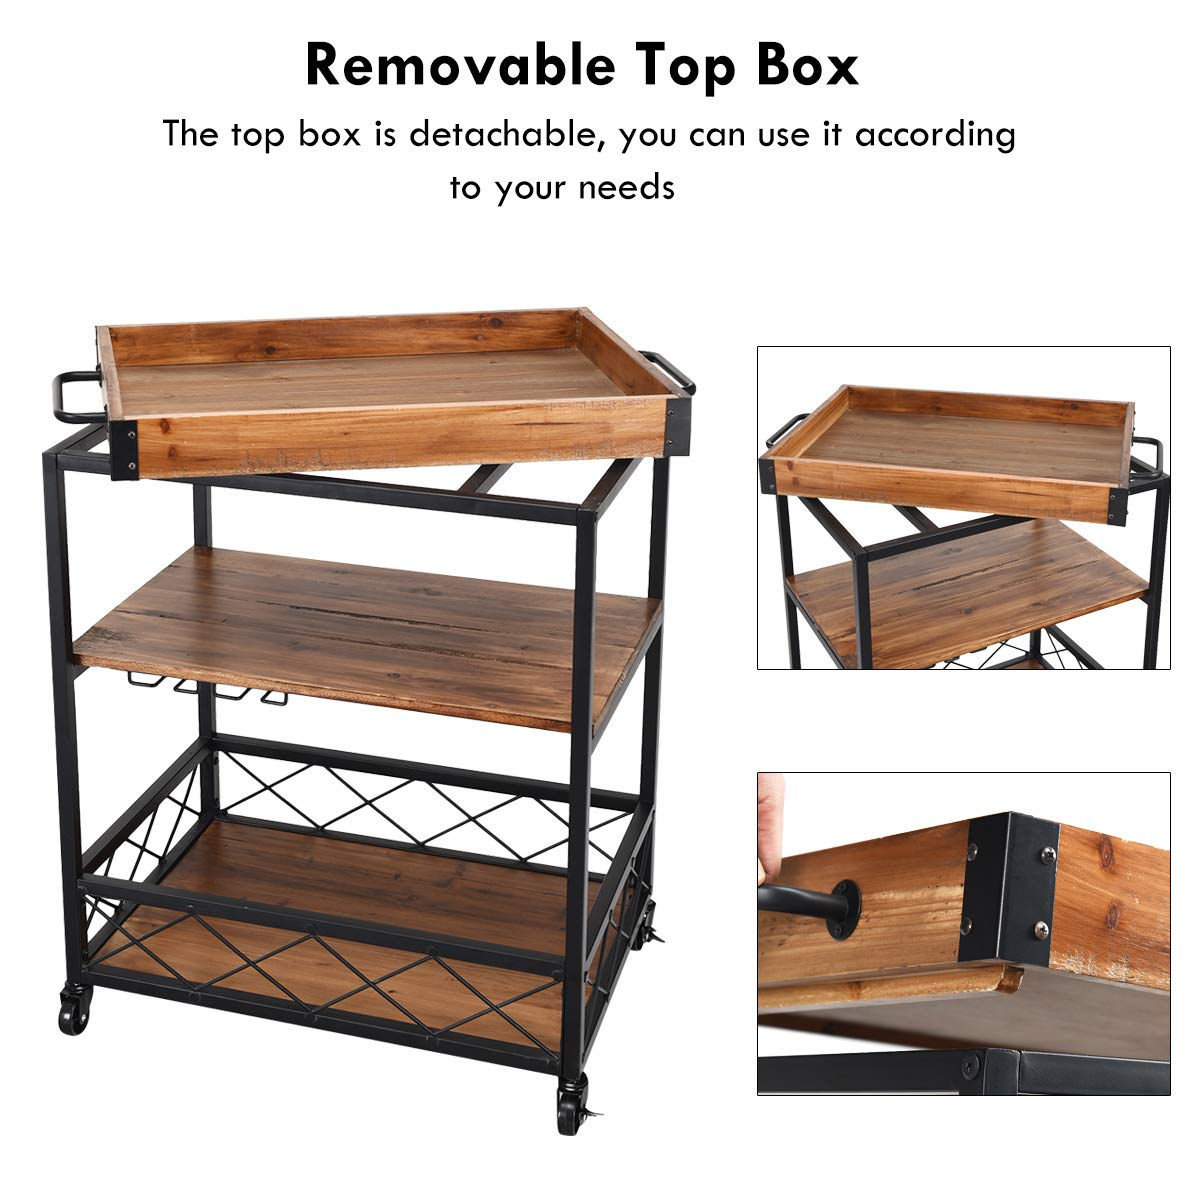 Giantex Kitchen Trolley Cart Island Rolling Serving Carts Utility Cart 3 Tier Storage Shelf with Glass Holde, Handle Racks, Lockable Caster Wheels Kitchen Carts Islands w/Removable Wood Box Container by Giantex (Image #7)